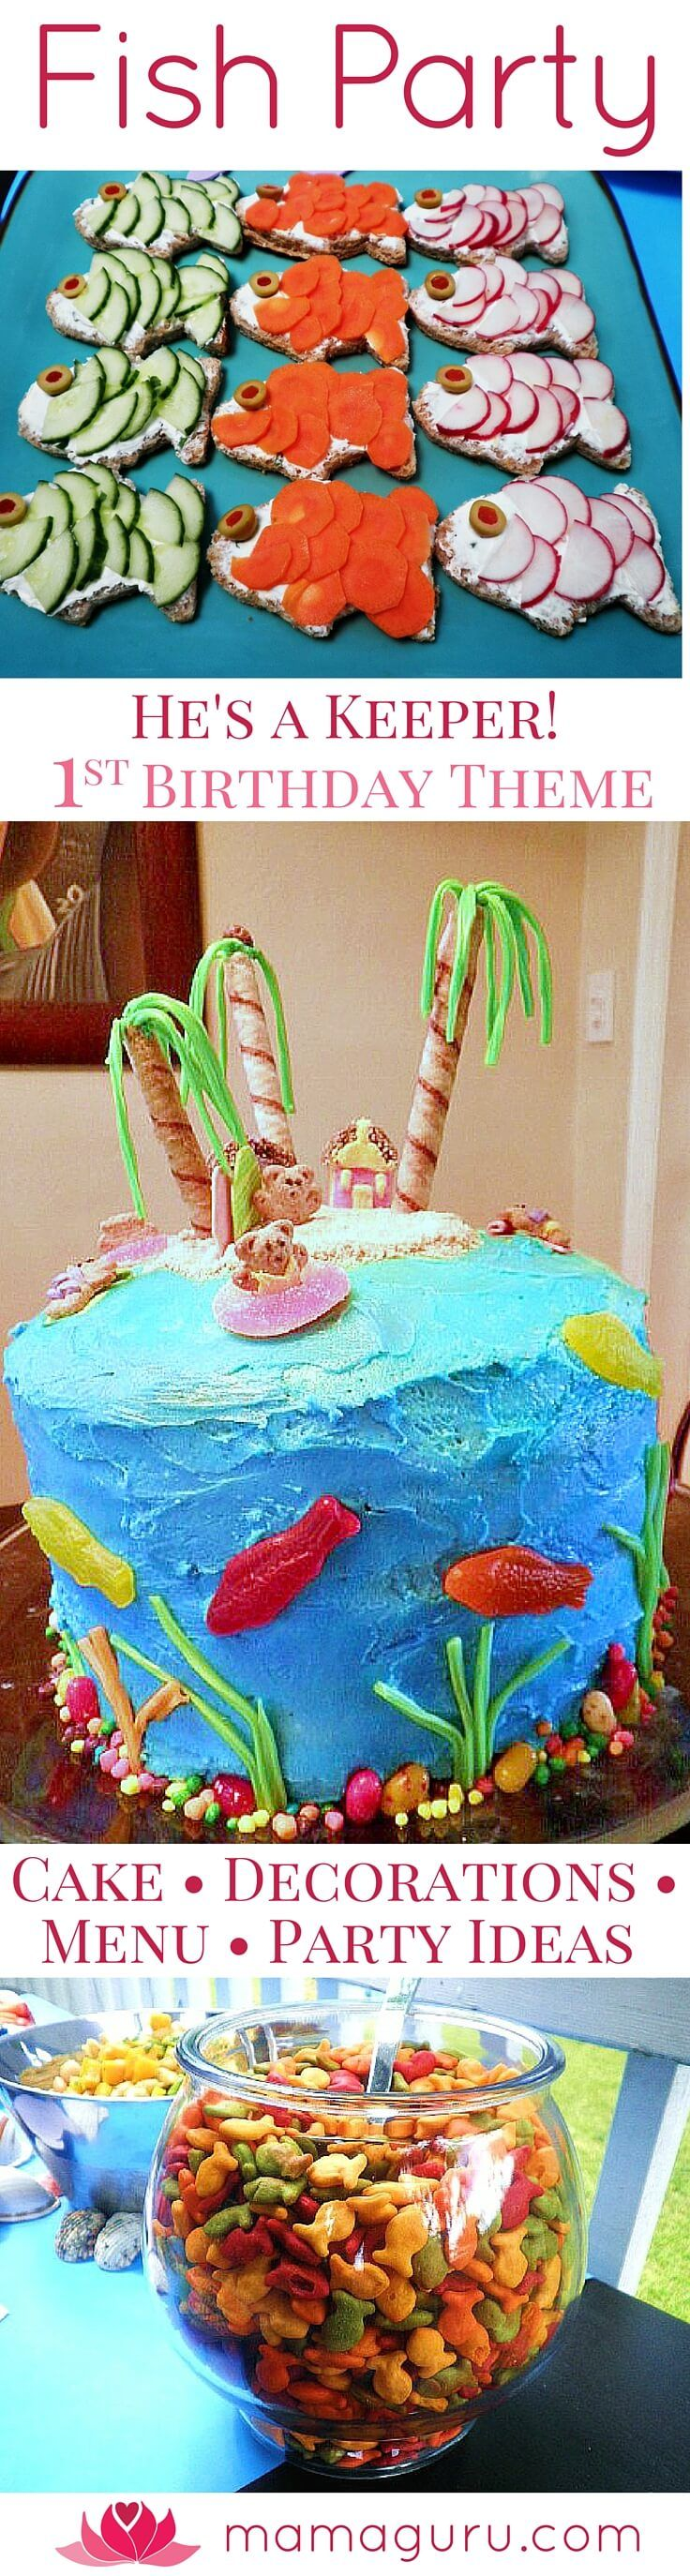 First Birthday Party • Fish Party • Kid Food • 1st   Birthday Party Theme • Fun Sandwiches